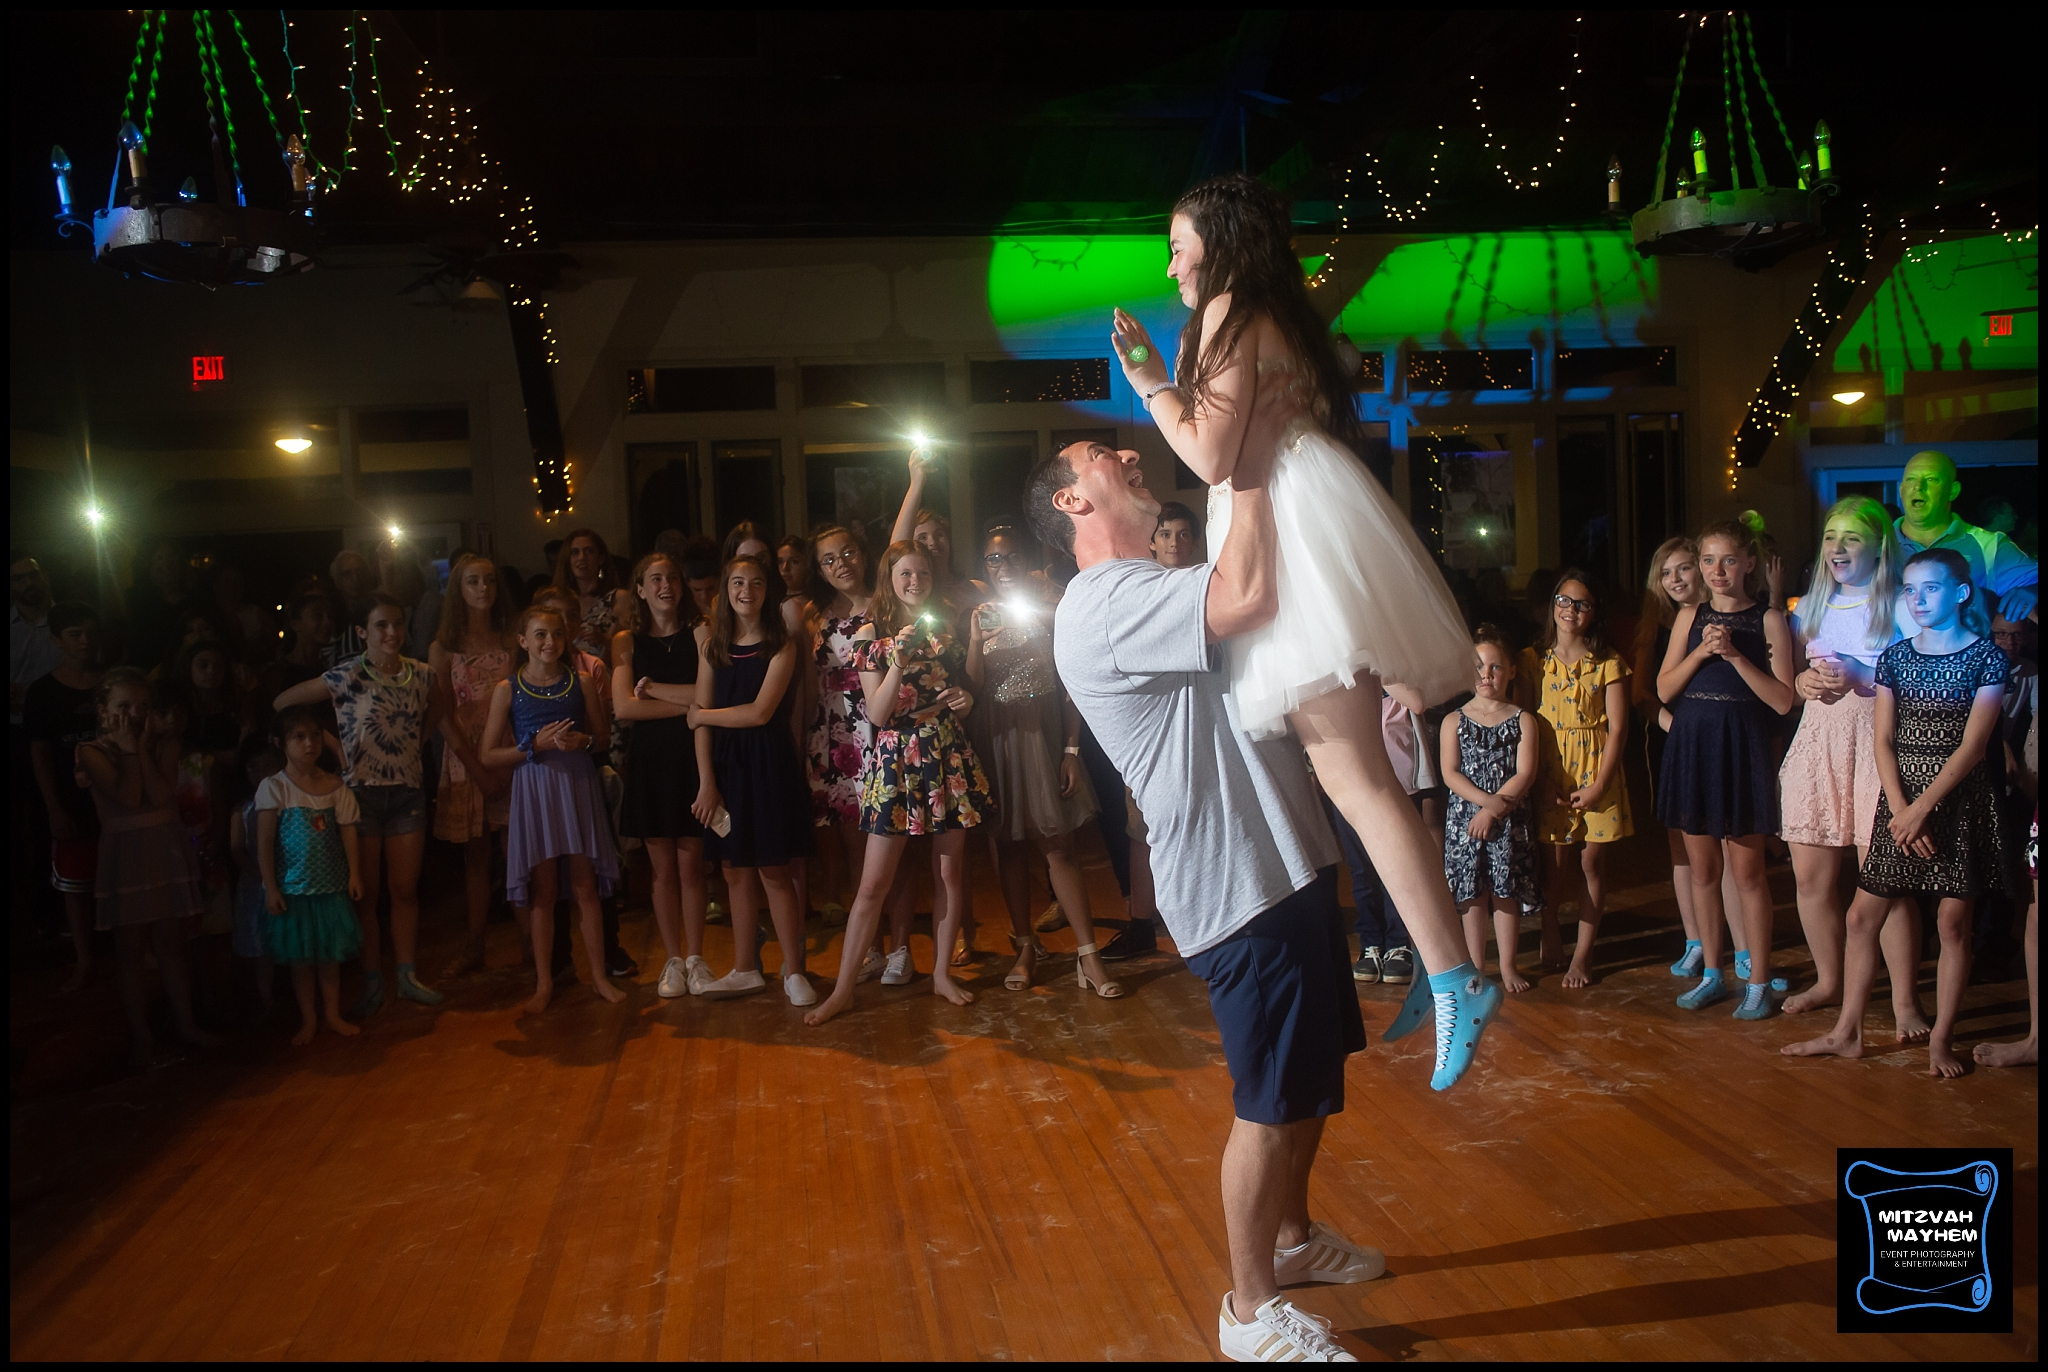 NJ-bat-mitzvah-mayhem-photography (13).jpg